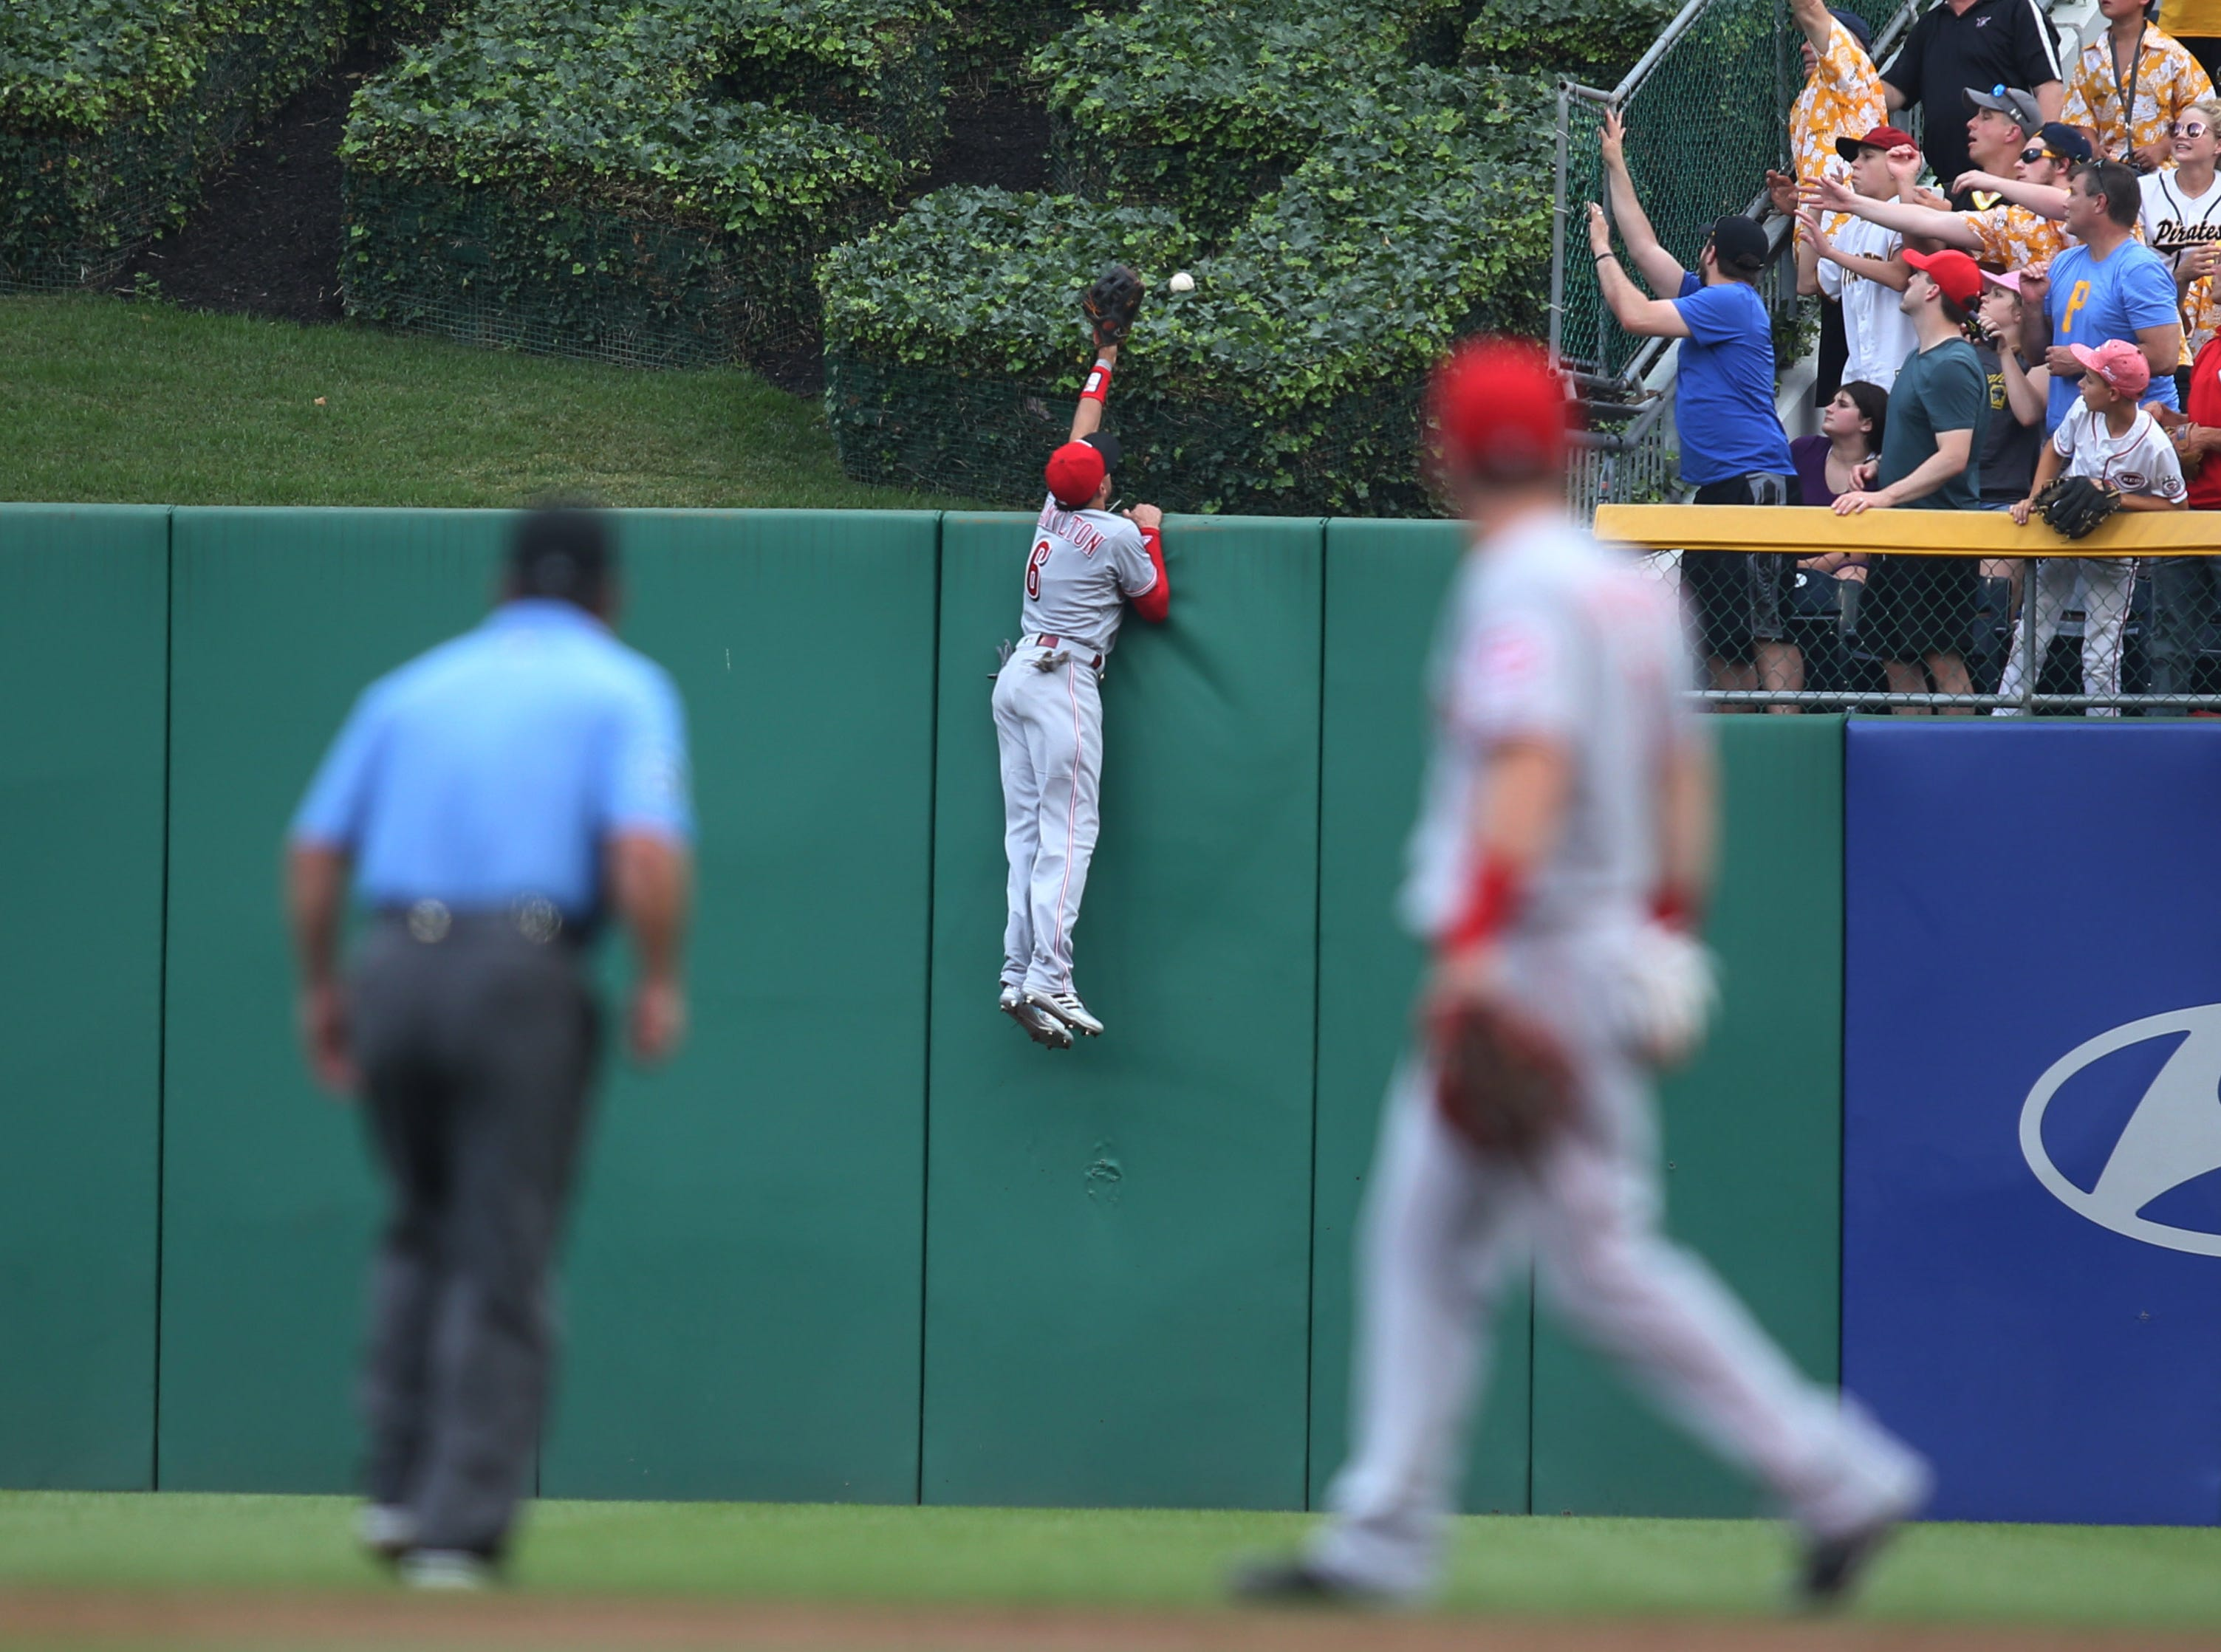 June 16: Cincinnati Reds center fielder Billy Hamilton can't catch this home run by Pittsburgh Pirates third baseman Colin Moran during the third inning at PNC Park.